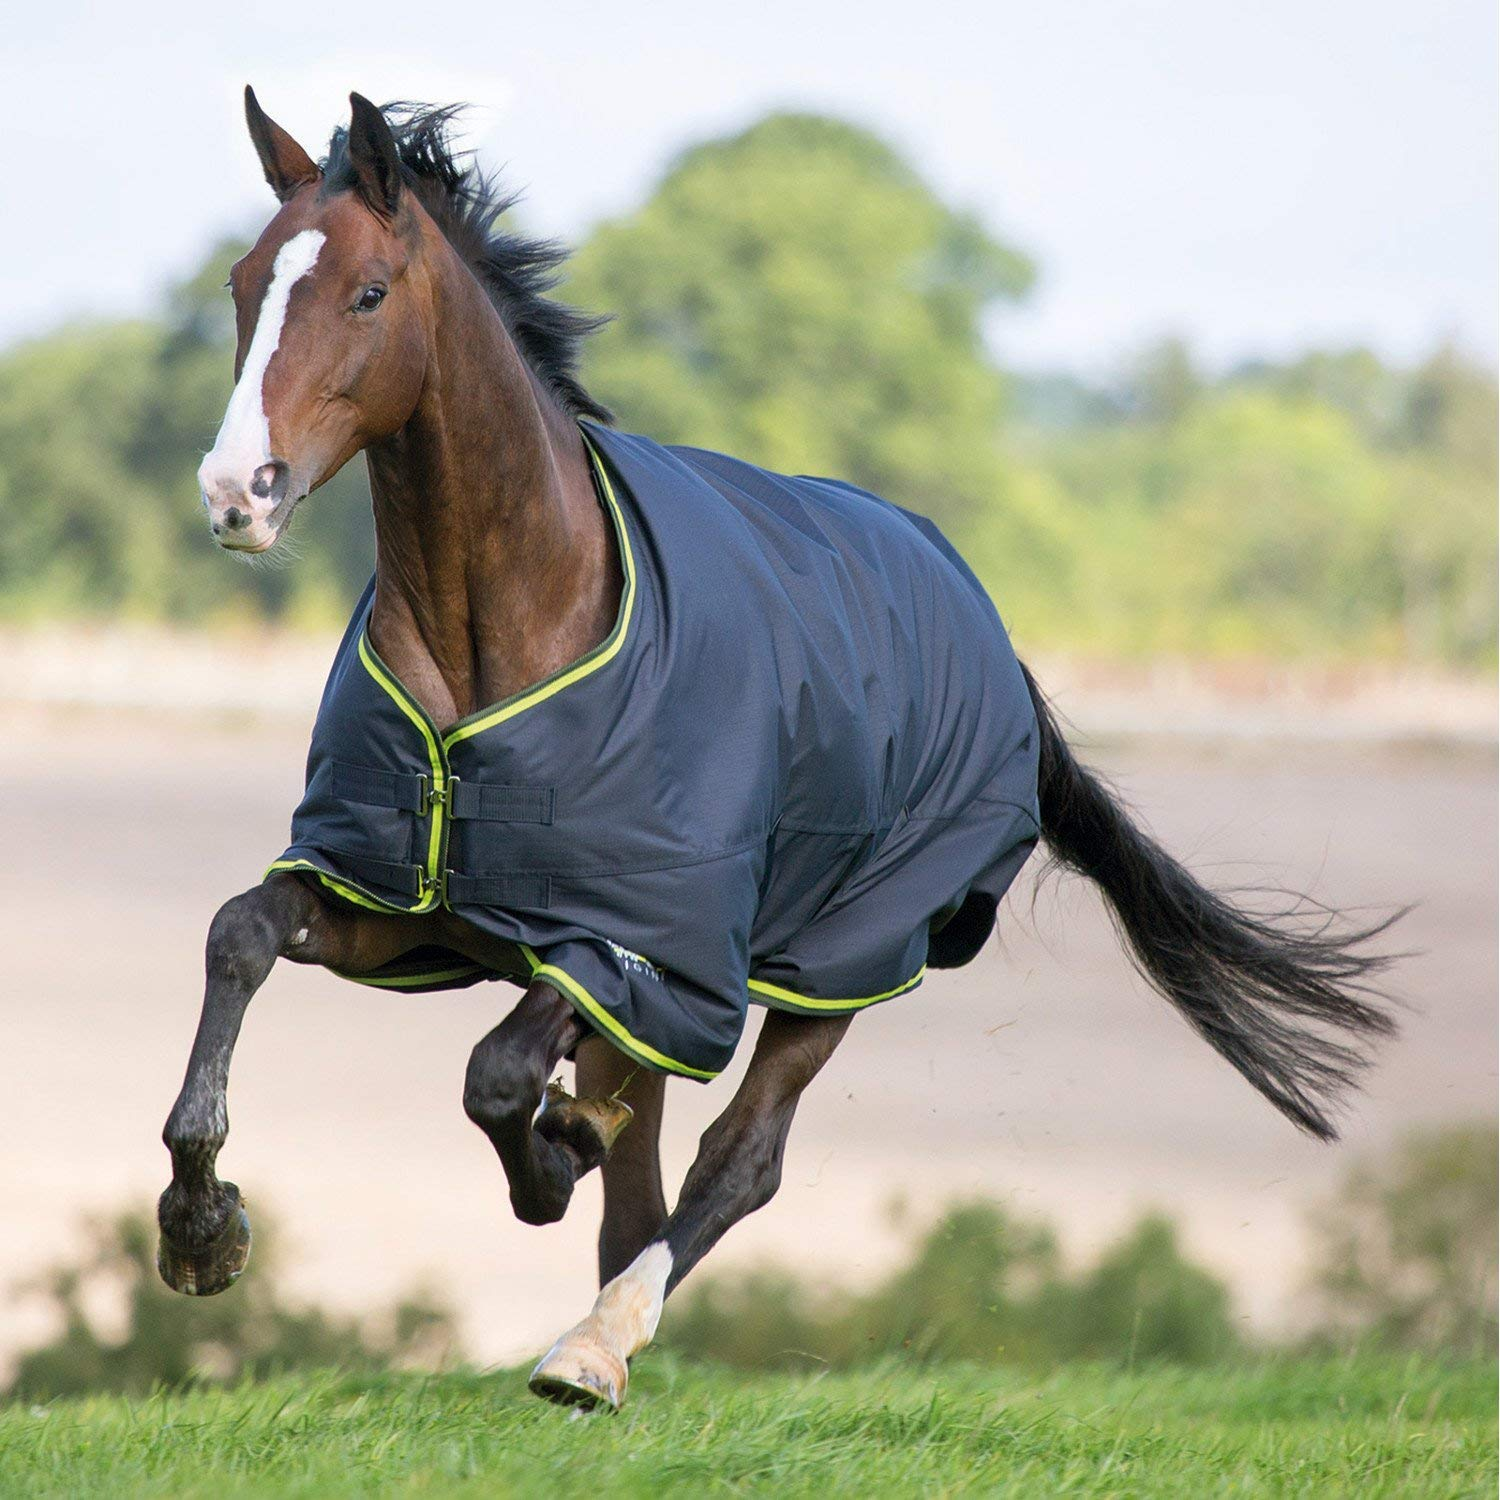 Charcoal Lime 6'9\ Charcoal Lime 6'9\ Shires Tempest Original 200 Turnout Rug-Charcoal Lime 6'9